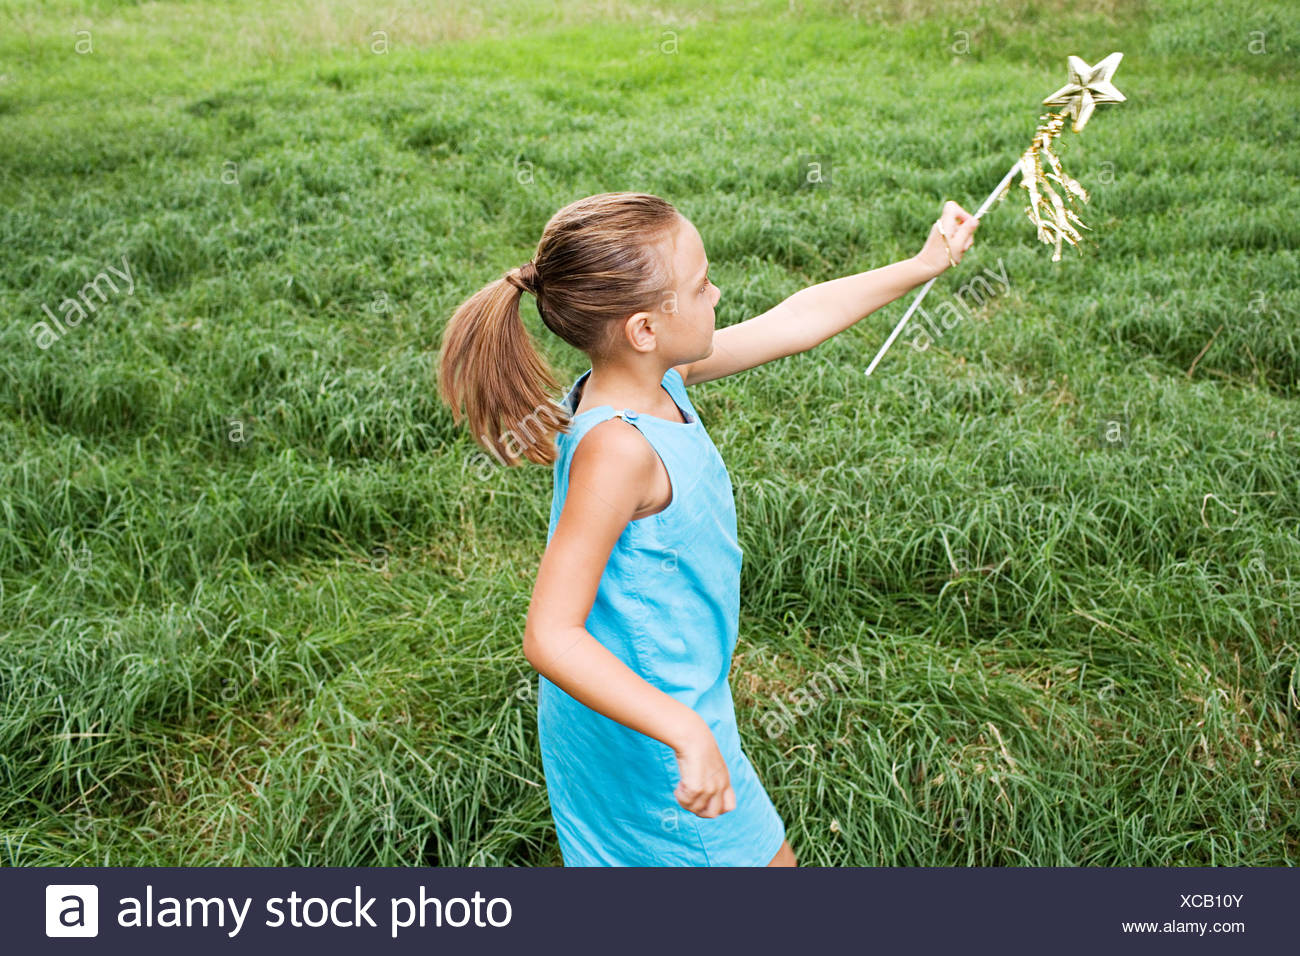 Girl playing in field - Stock Image